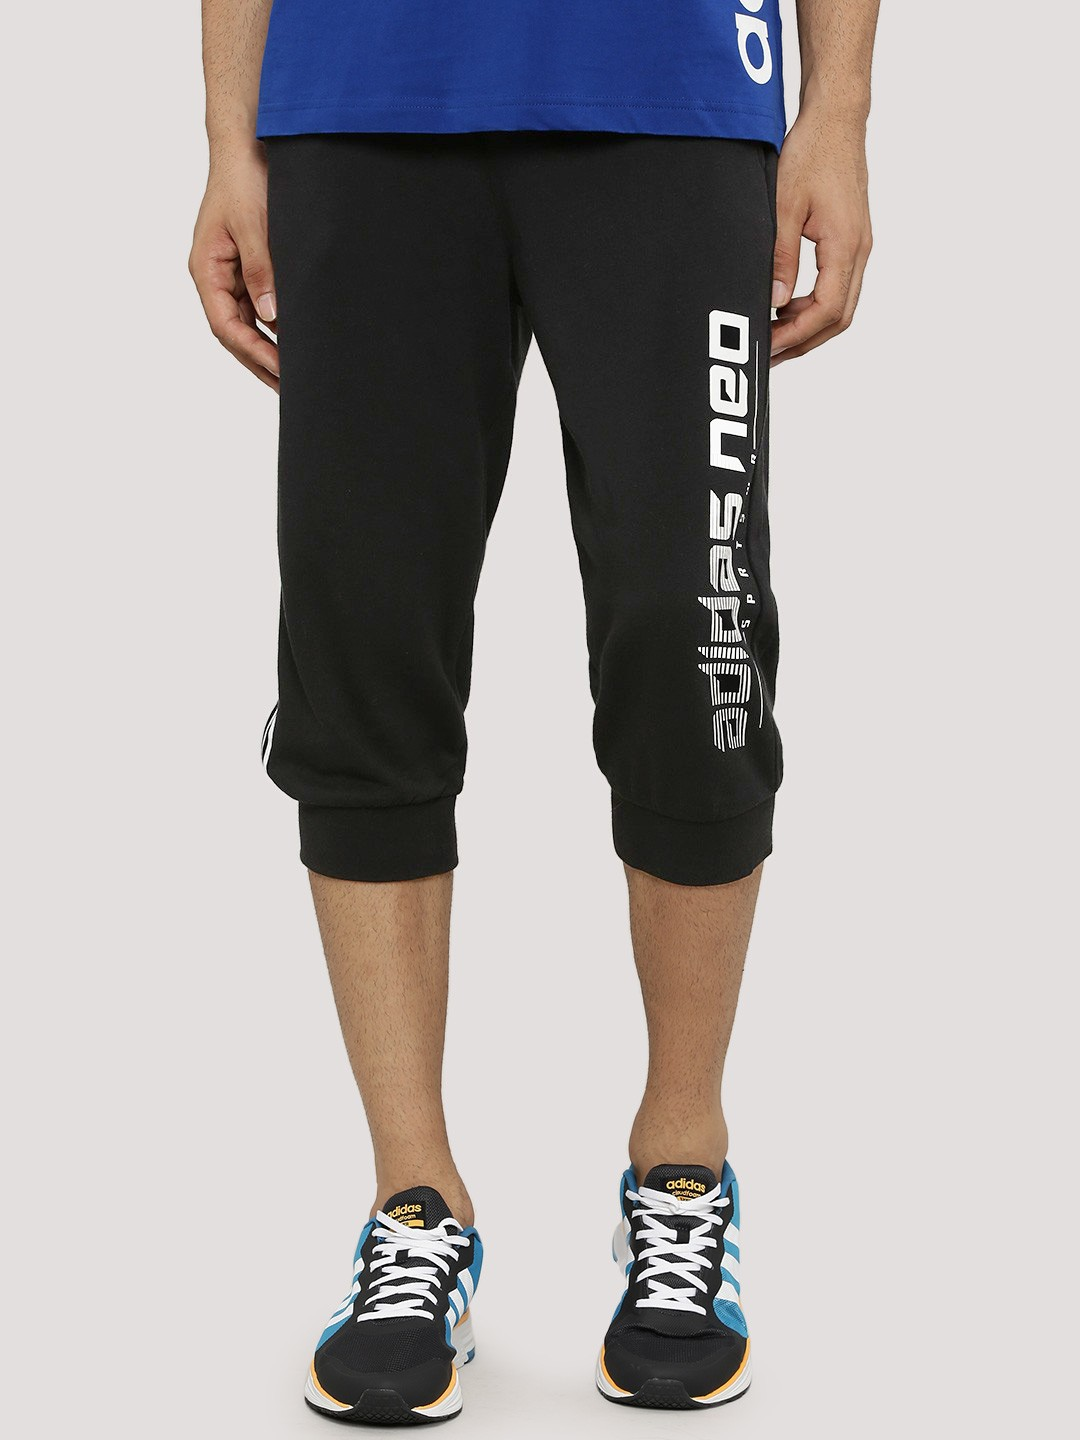 Buy Adidas Neo Cropped Track Pants In Knit For Men Men S